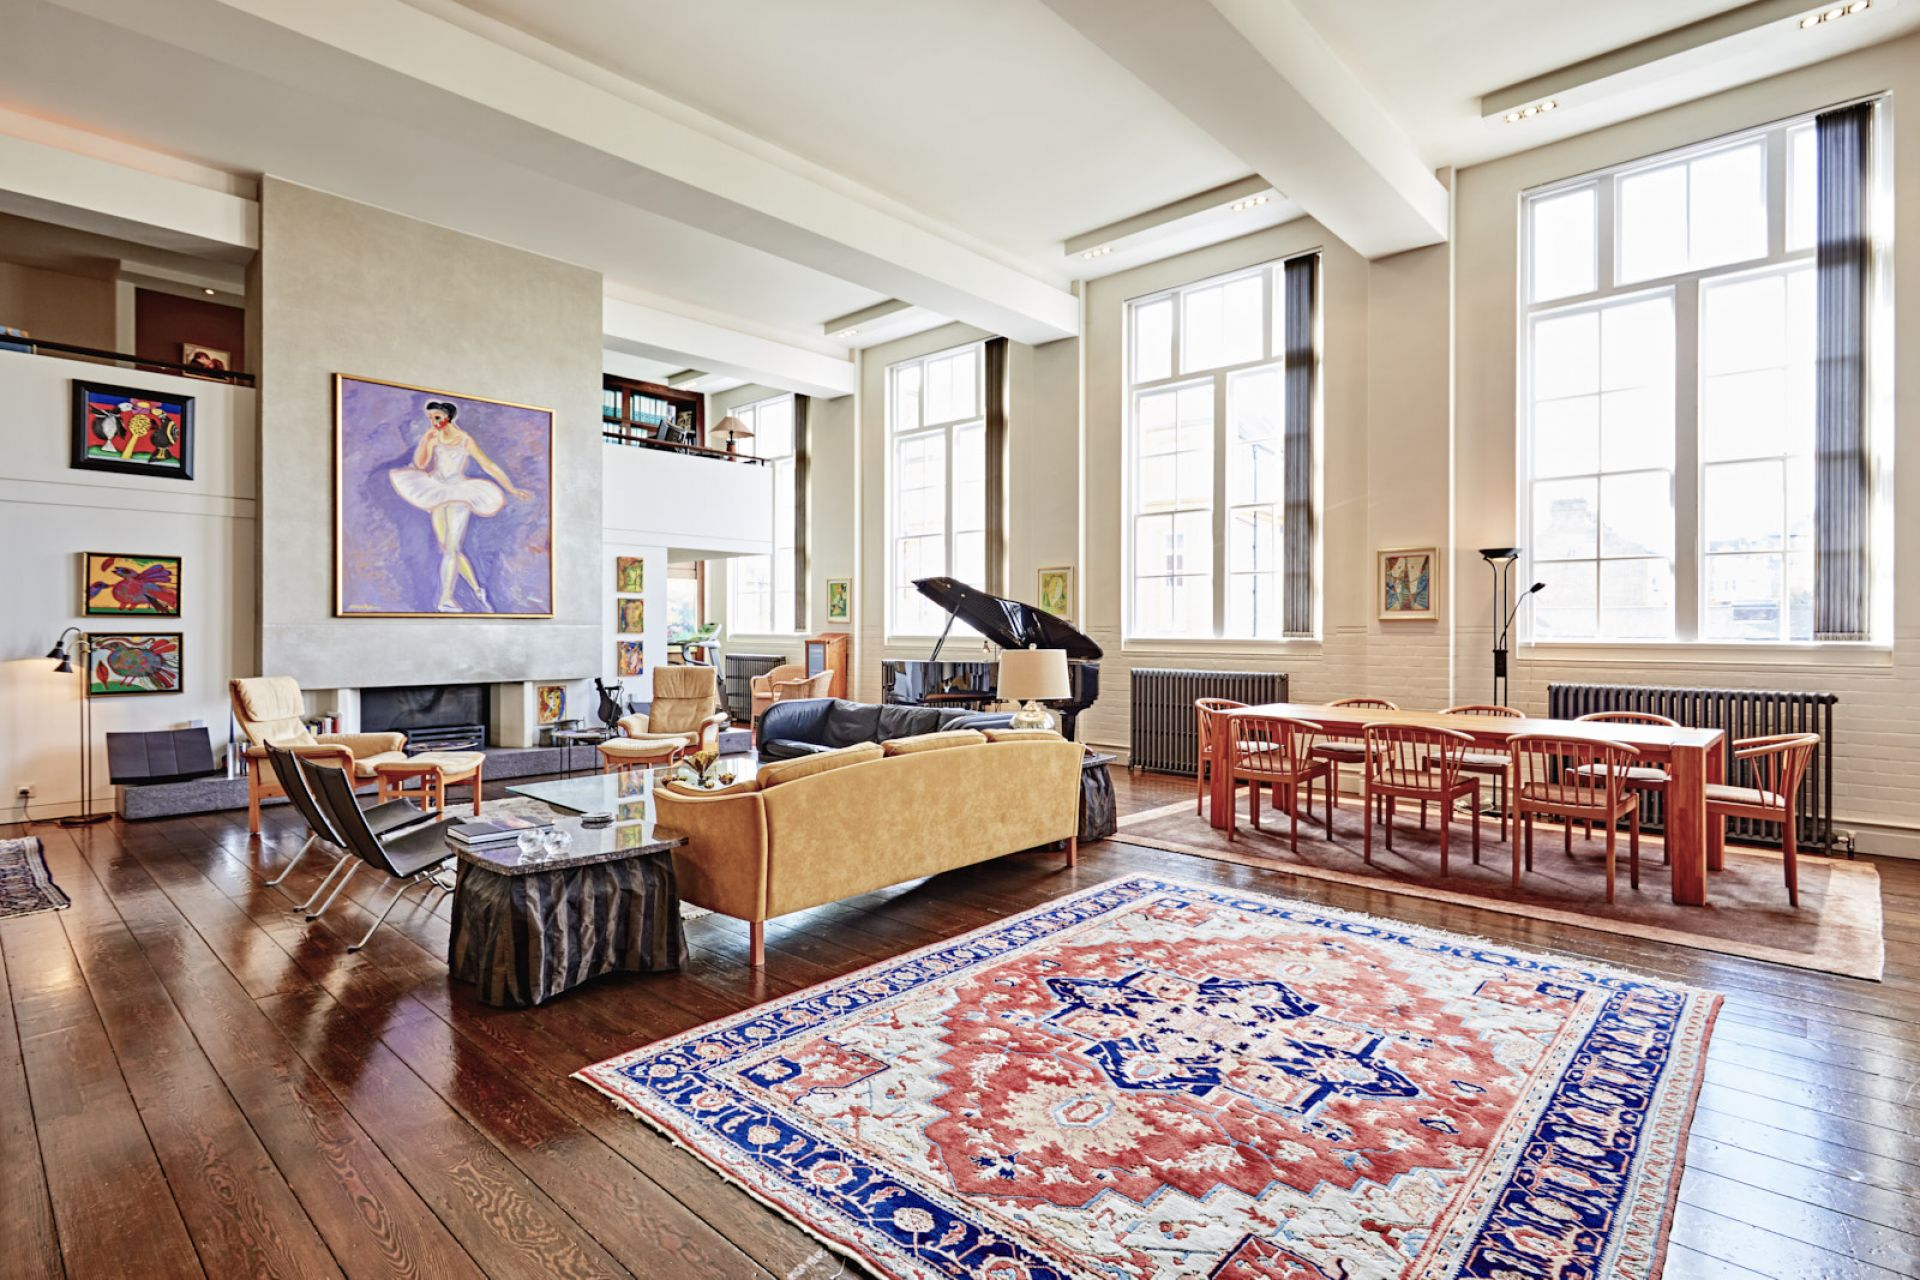 Loft-apartments for sale in London   London Property ...